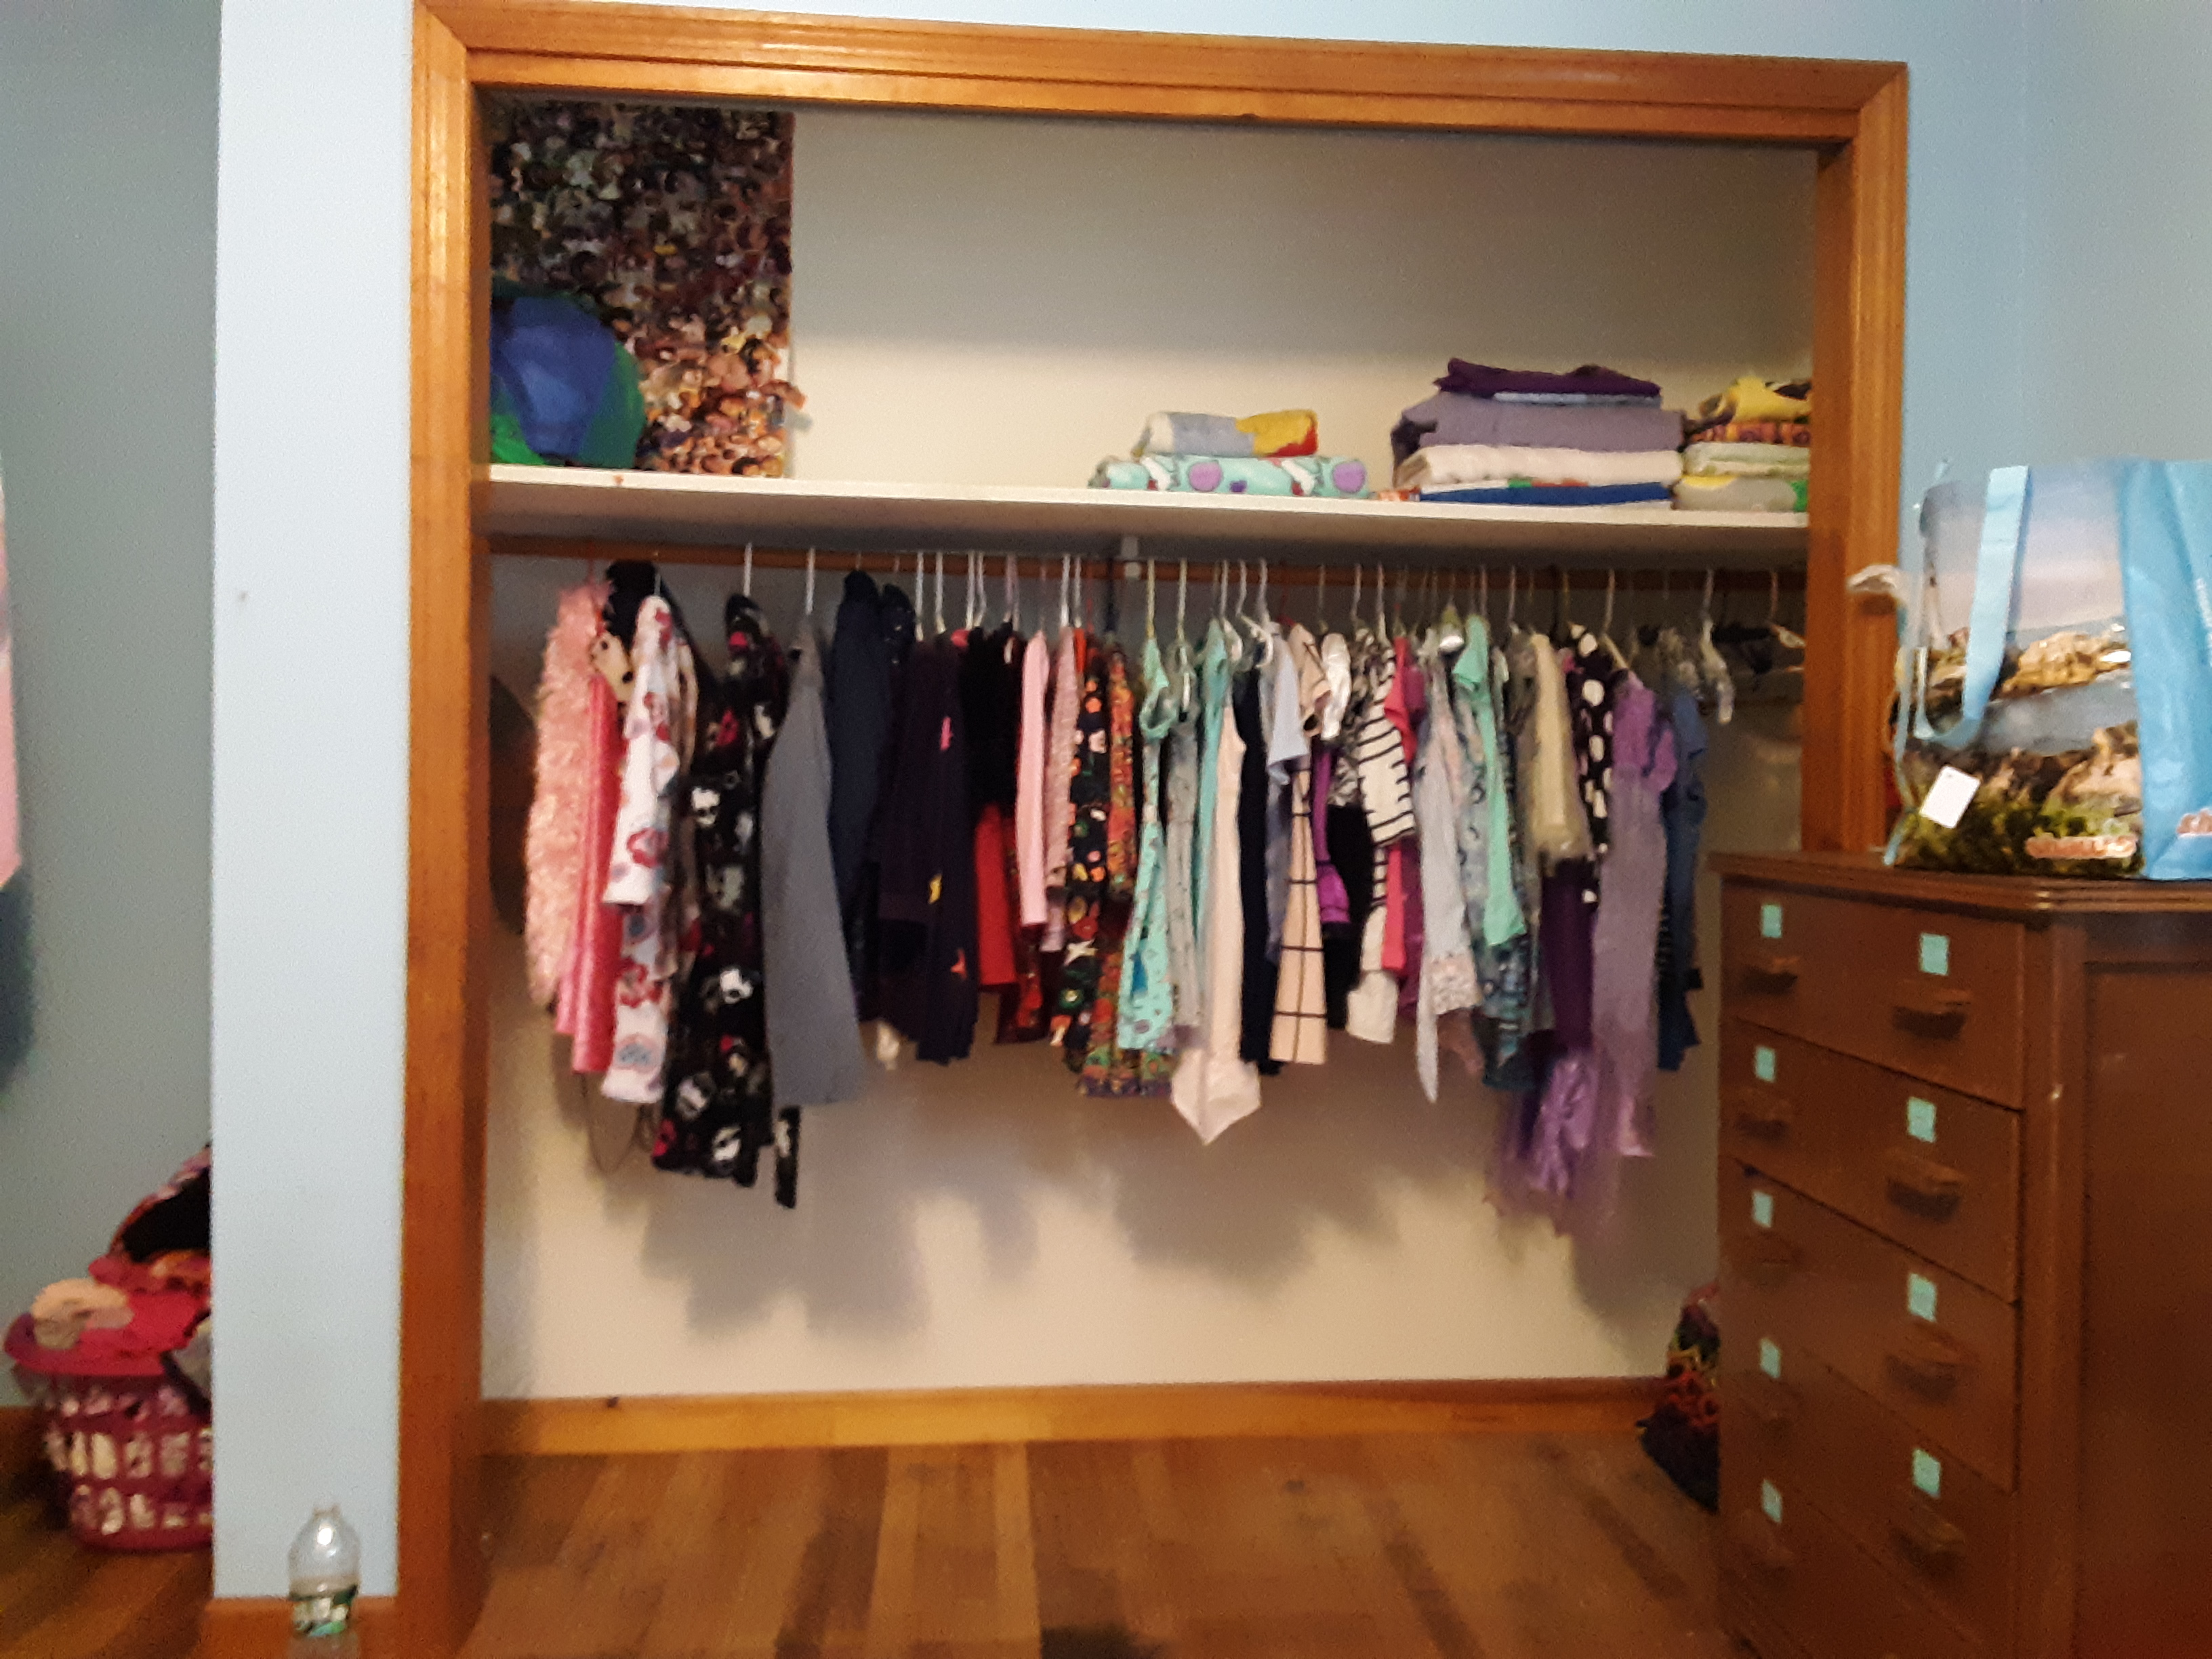 Now, Ava's closet is organized!